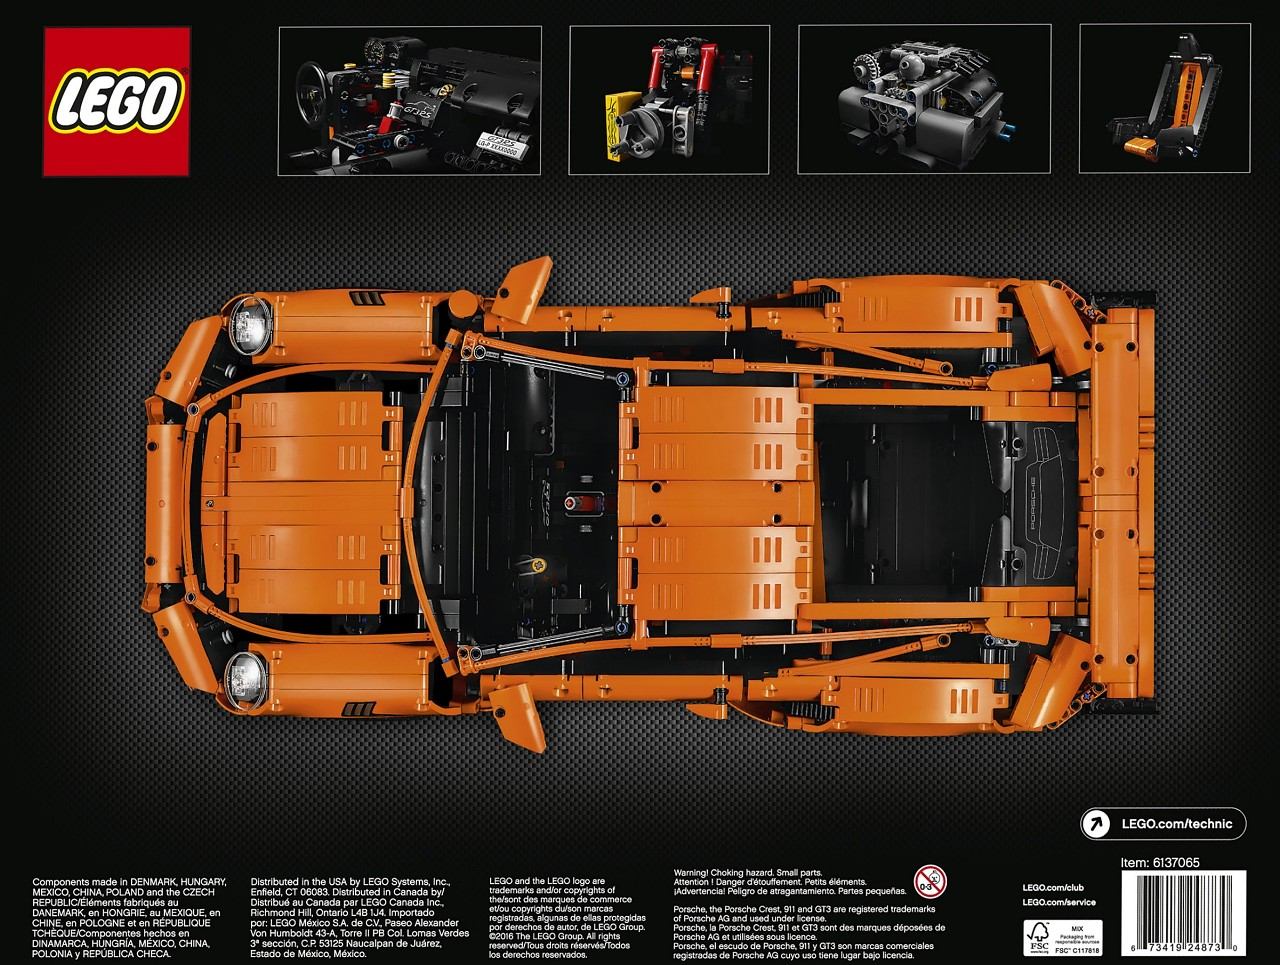 Technic 42056 Porsche 911 Gt3 Rs Brickset Lego Set